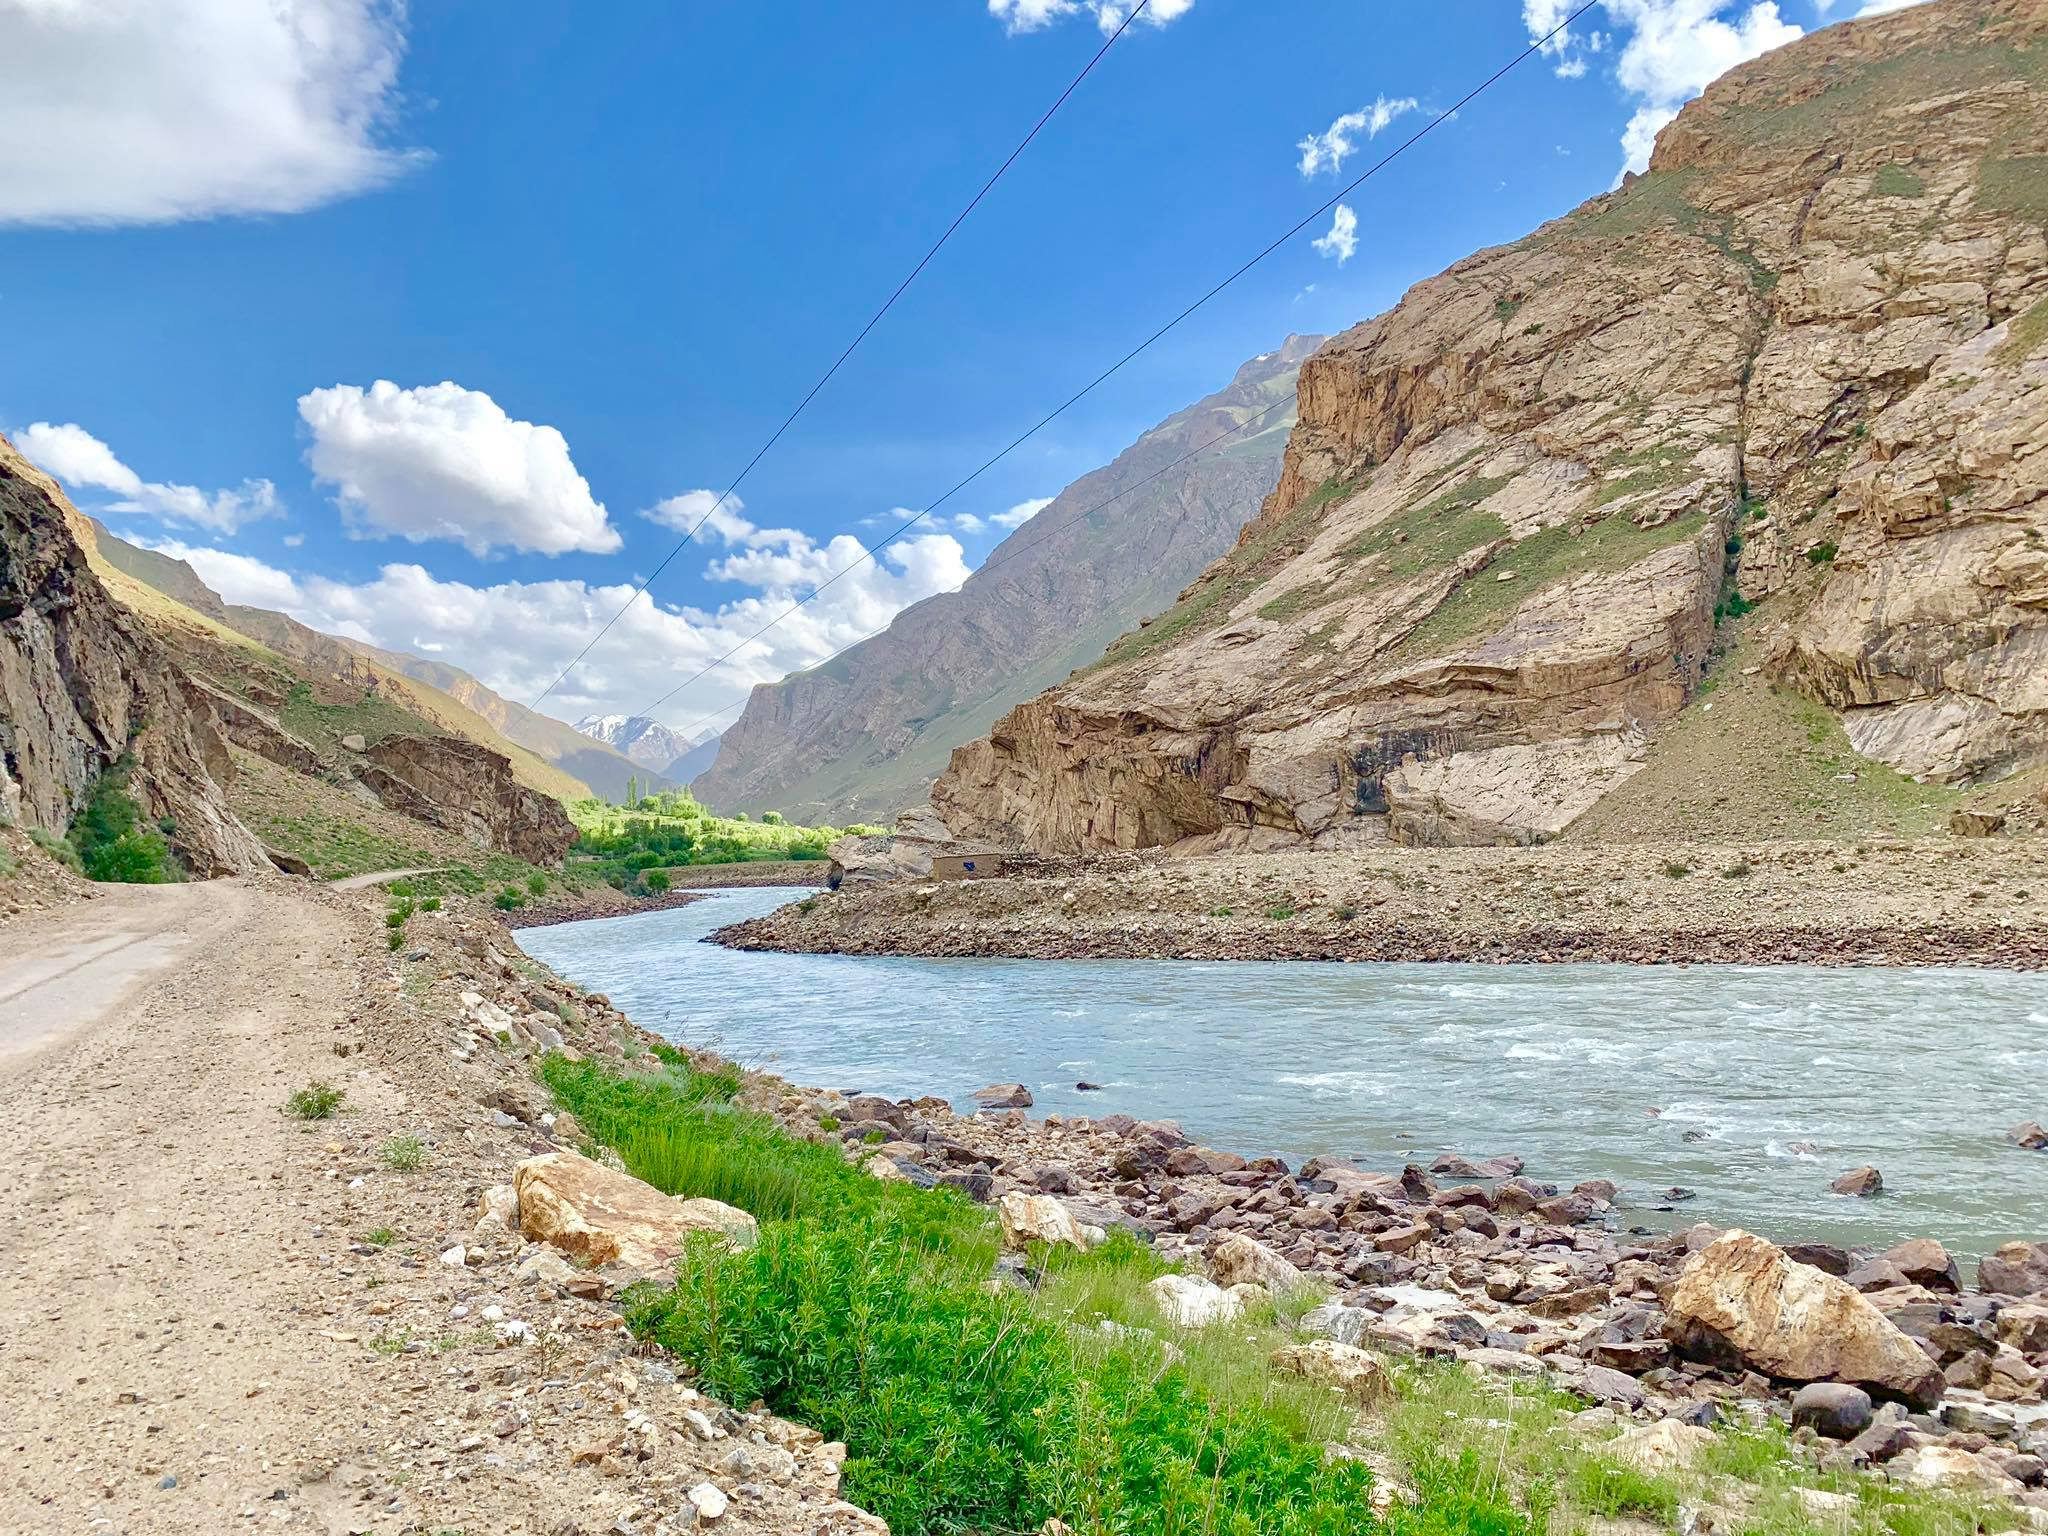 Kach Solo Travels in 2019 Driving from Ishkashim to Wakhan Valley11.jpg